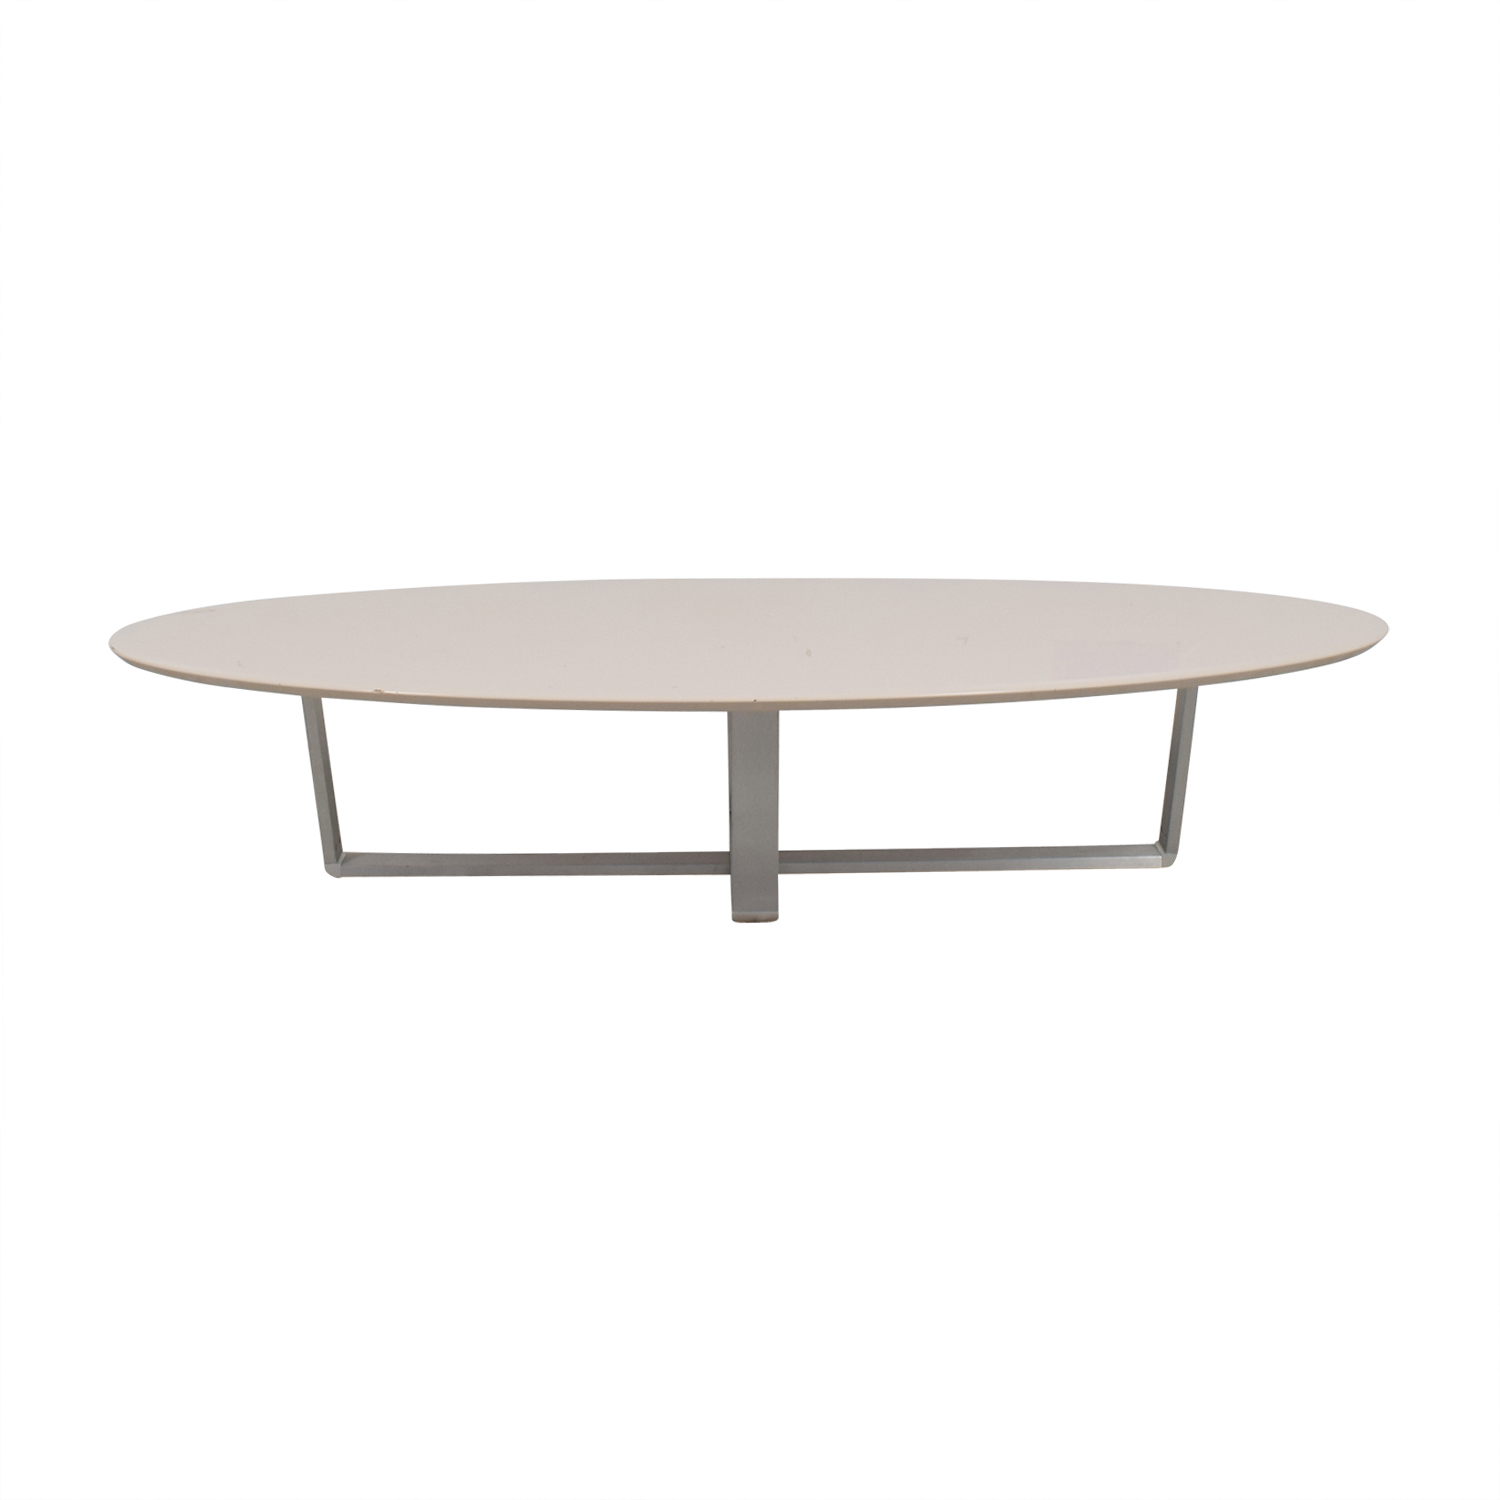 Argo Furniture Argo Furniture White Lacquer Oval Coffee Table used